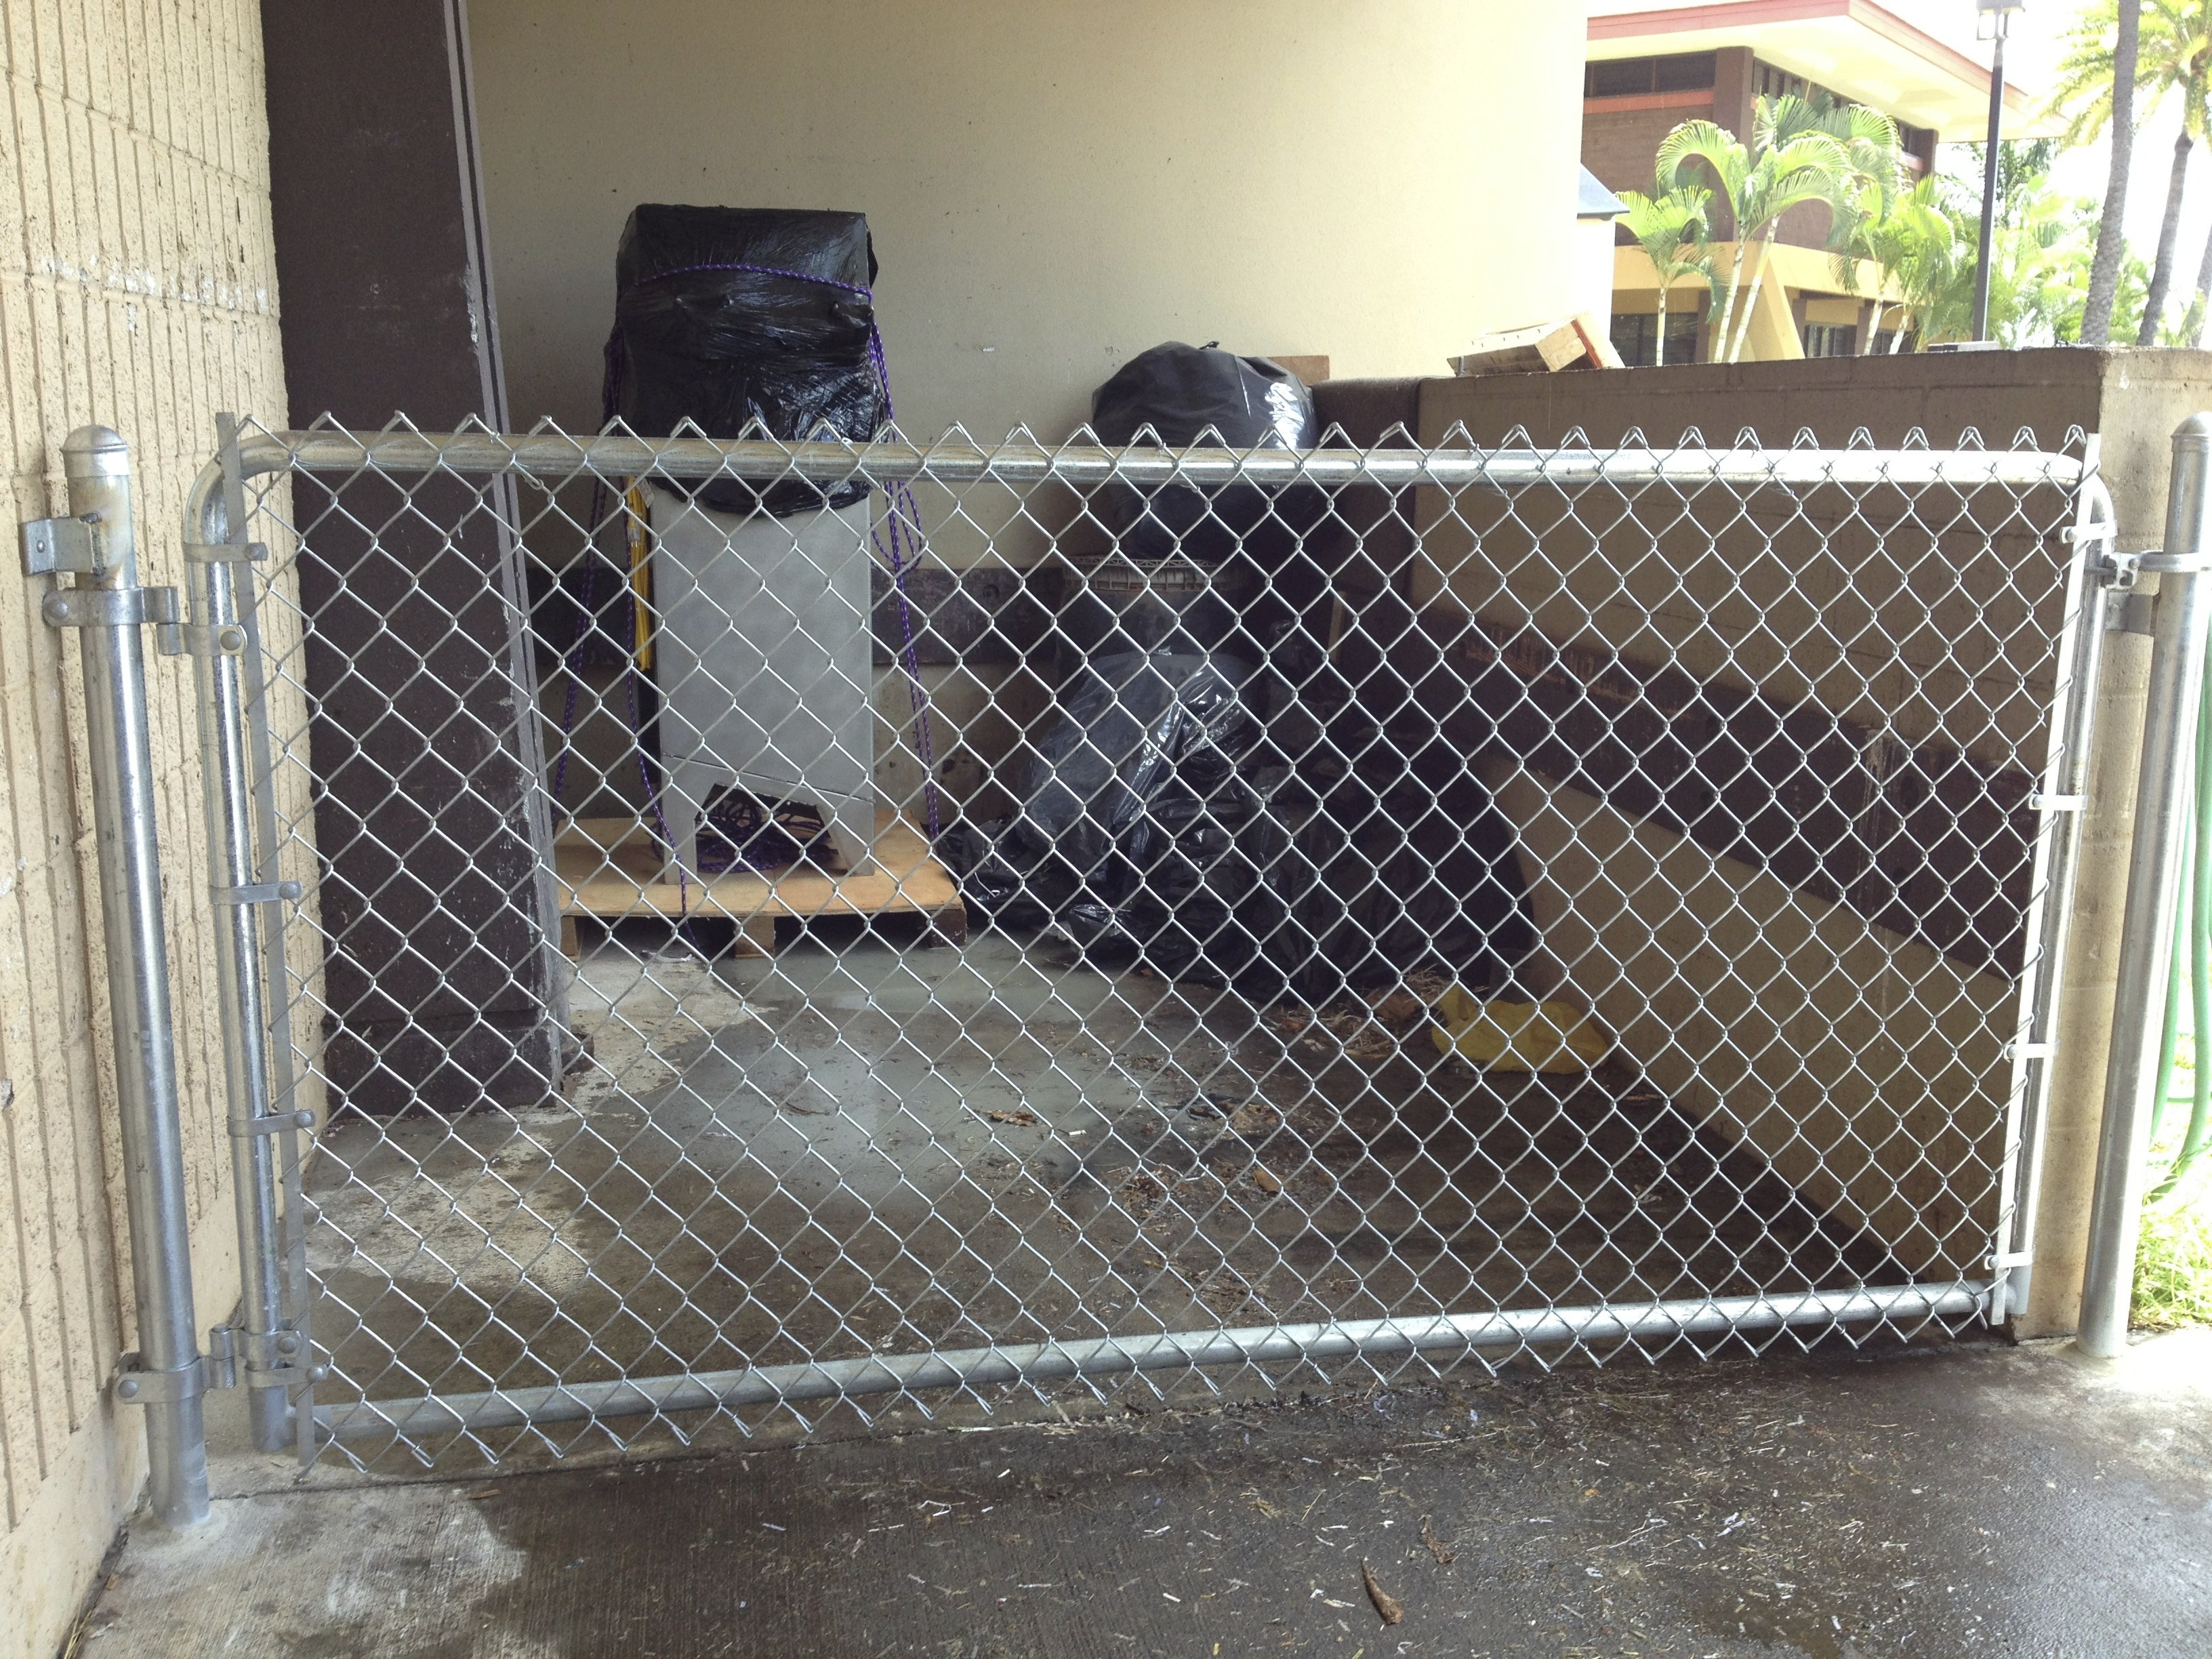 Chain link fencing for Kapiolani Community College